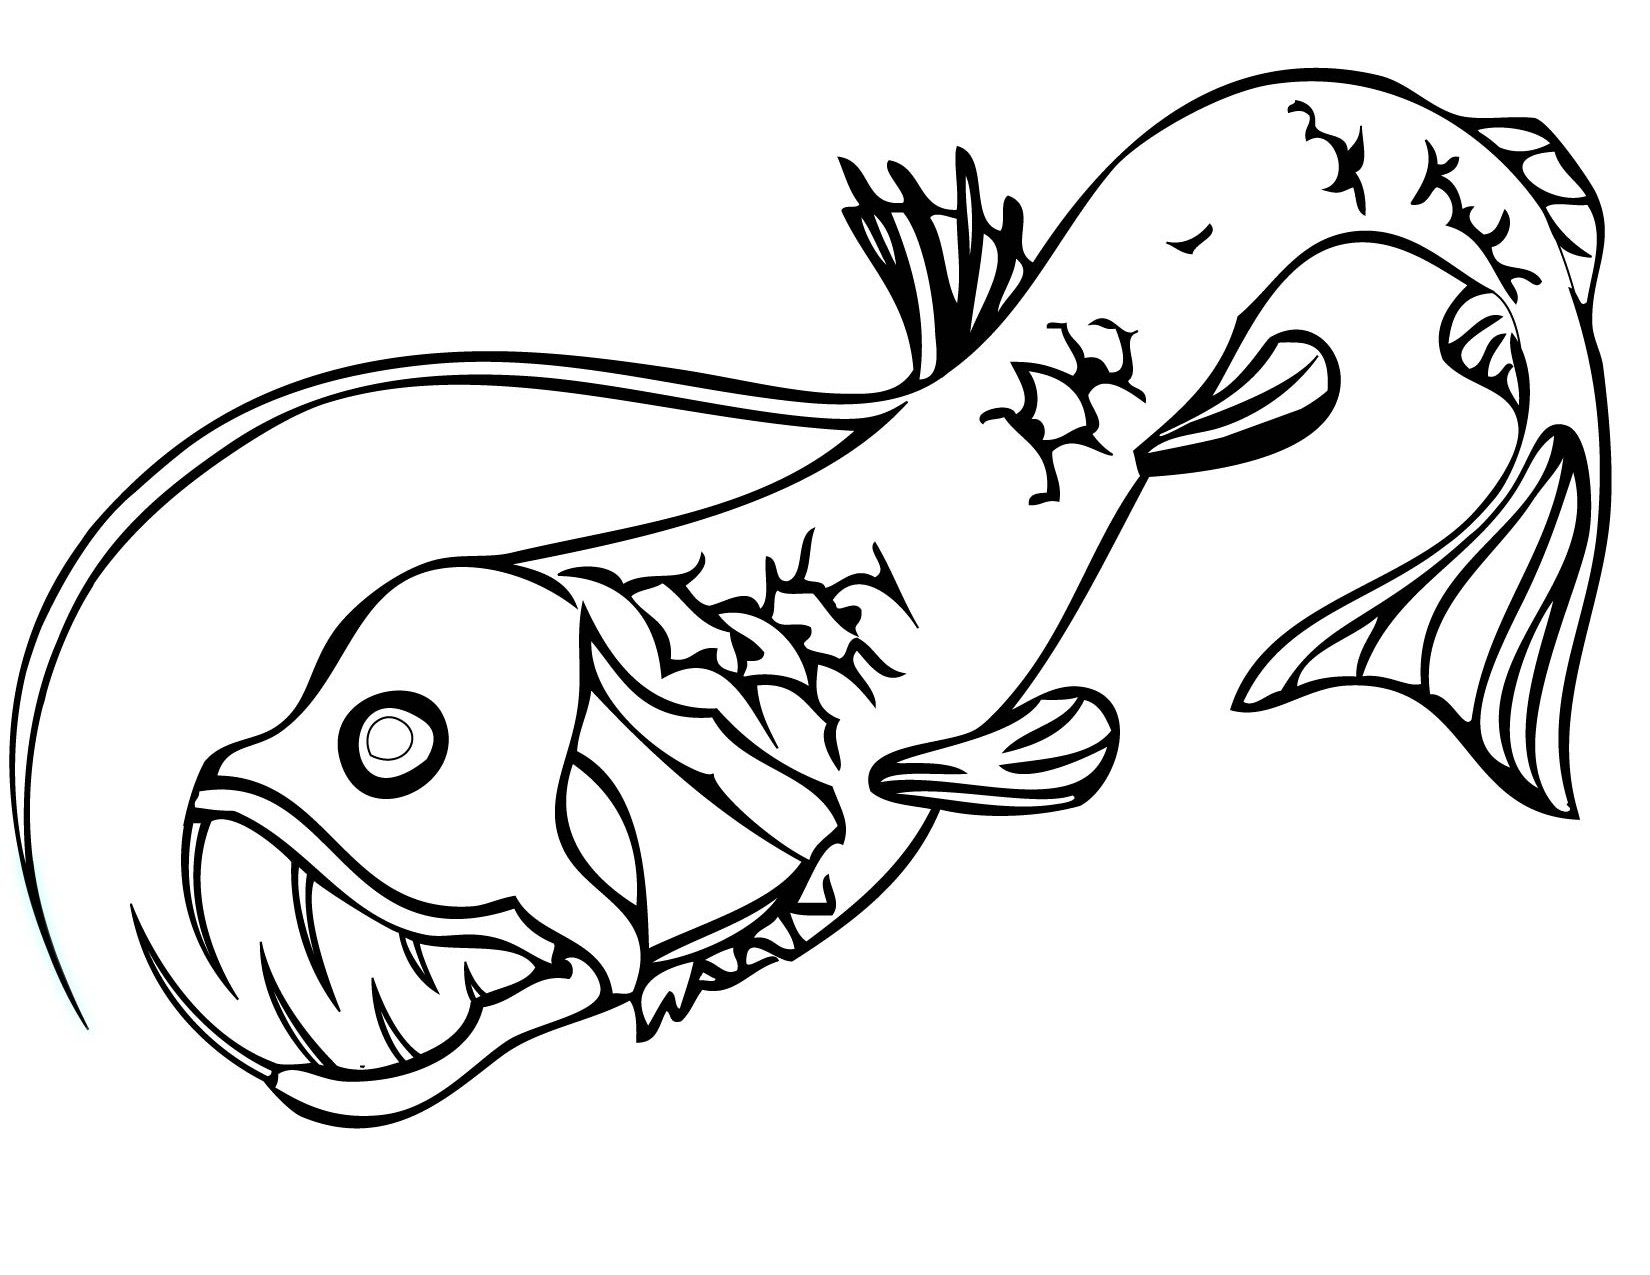 Fish Skeleton Drawing at GetDrawings.com | Free for personal use ...